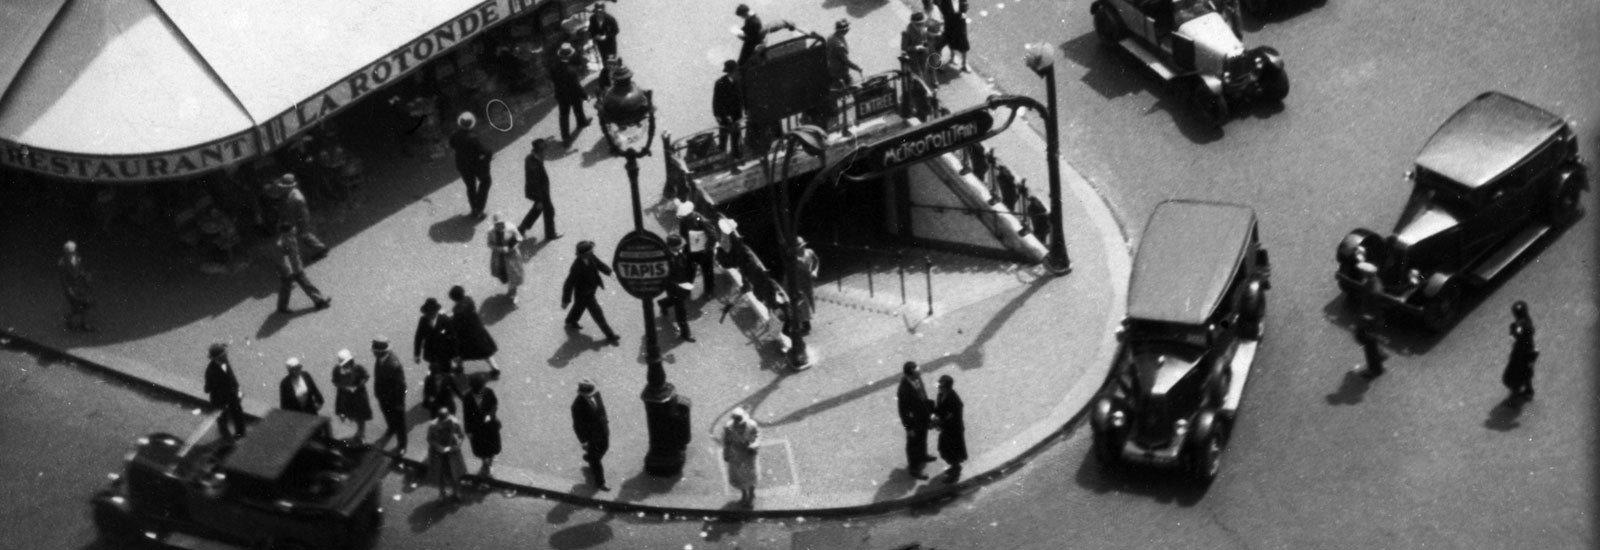 View from Galeries Lafayette Department Store onto Boulevard Haussmann, Paris, 1930 (detail) © Fritz Block Estate Archive, Stockholm/Hamburg